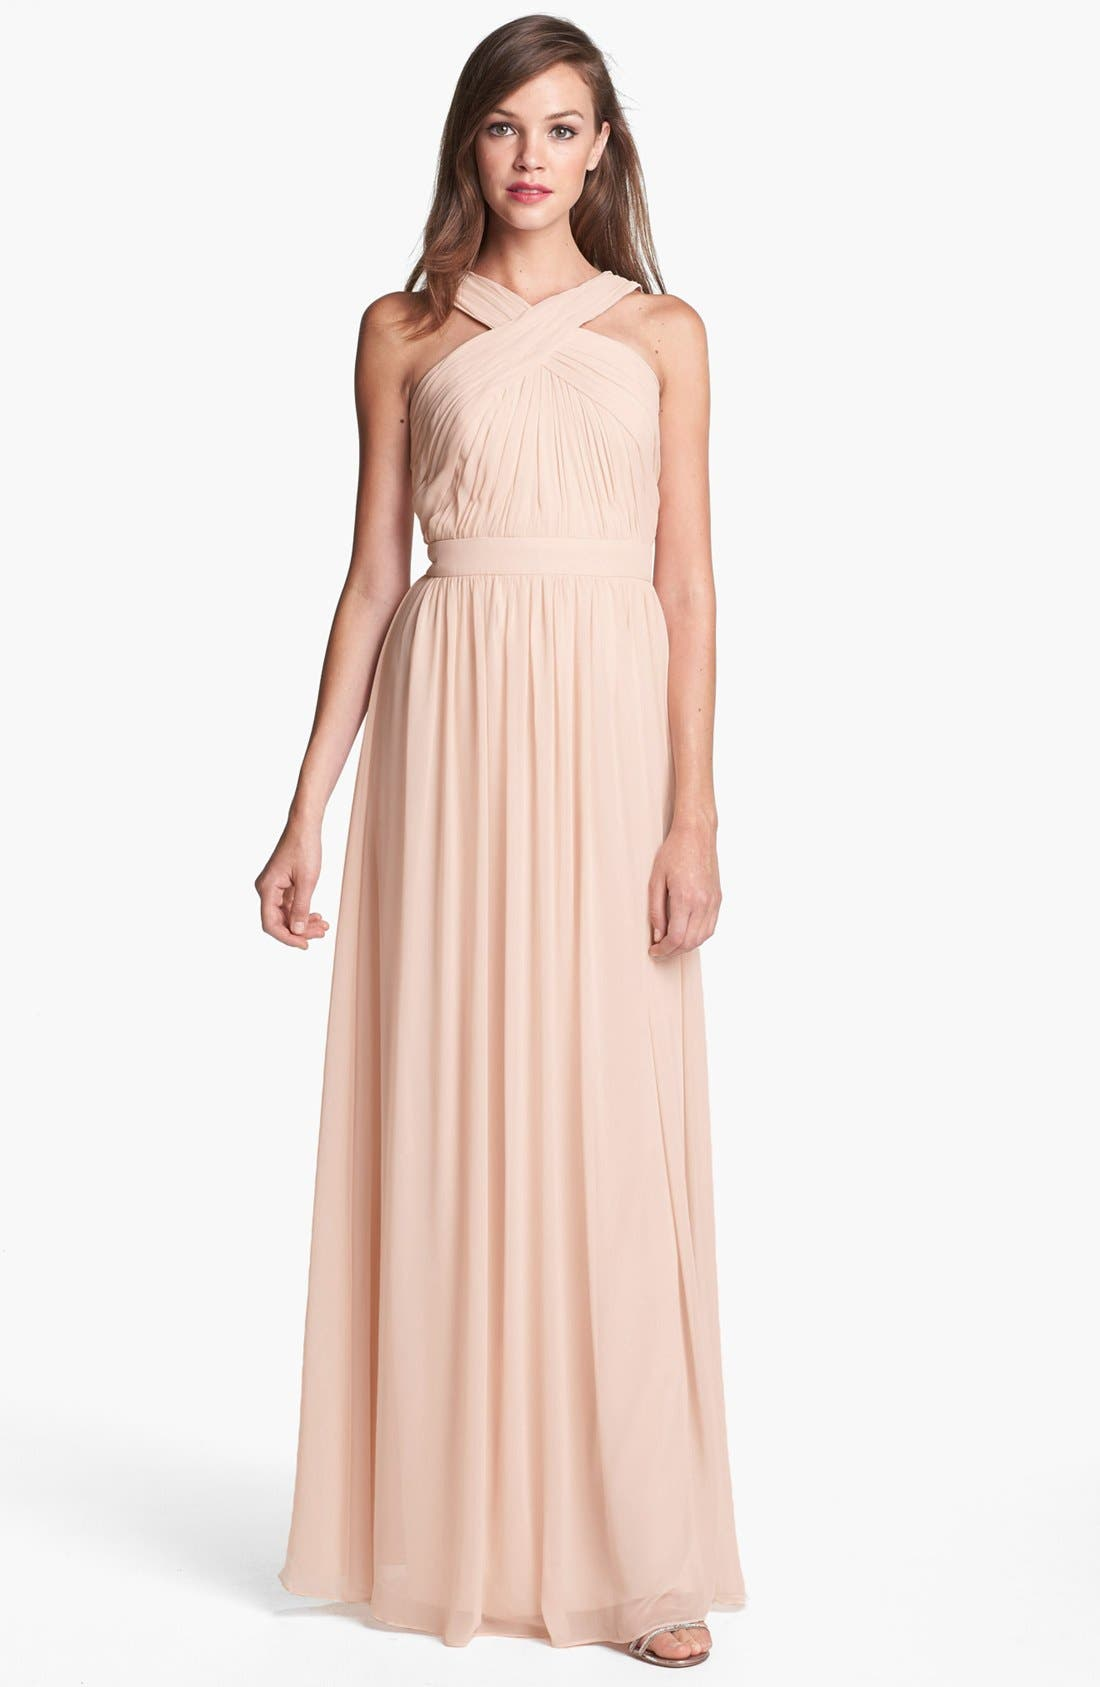 Main Image - Monique Lhuillier Bridesmaids Crisscross Chiffon Gown (Nordstrom Exclusive)